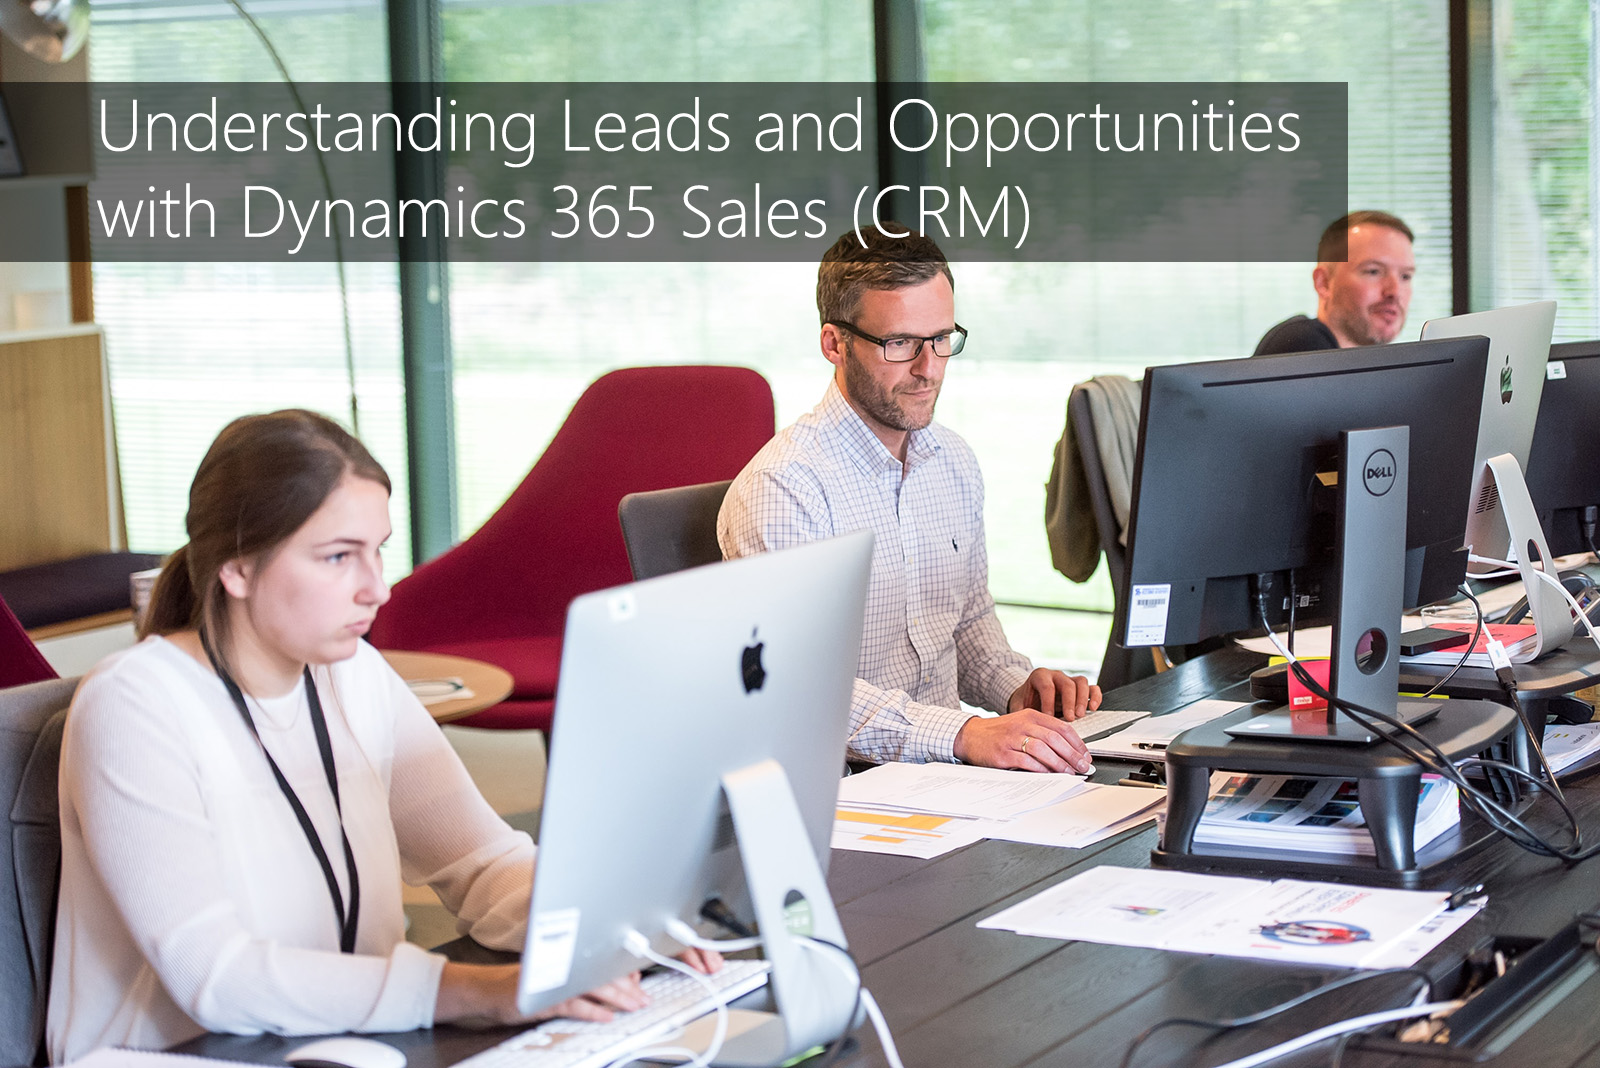 Understanding Leads and Opportunities with Dynamics 365 Sales (CRM)